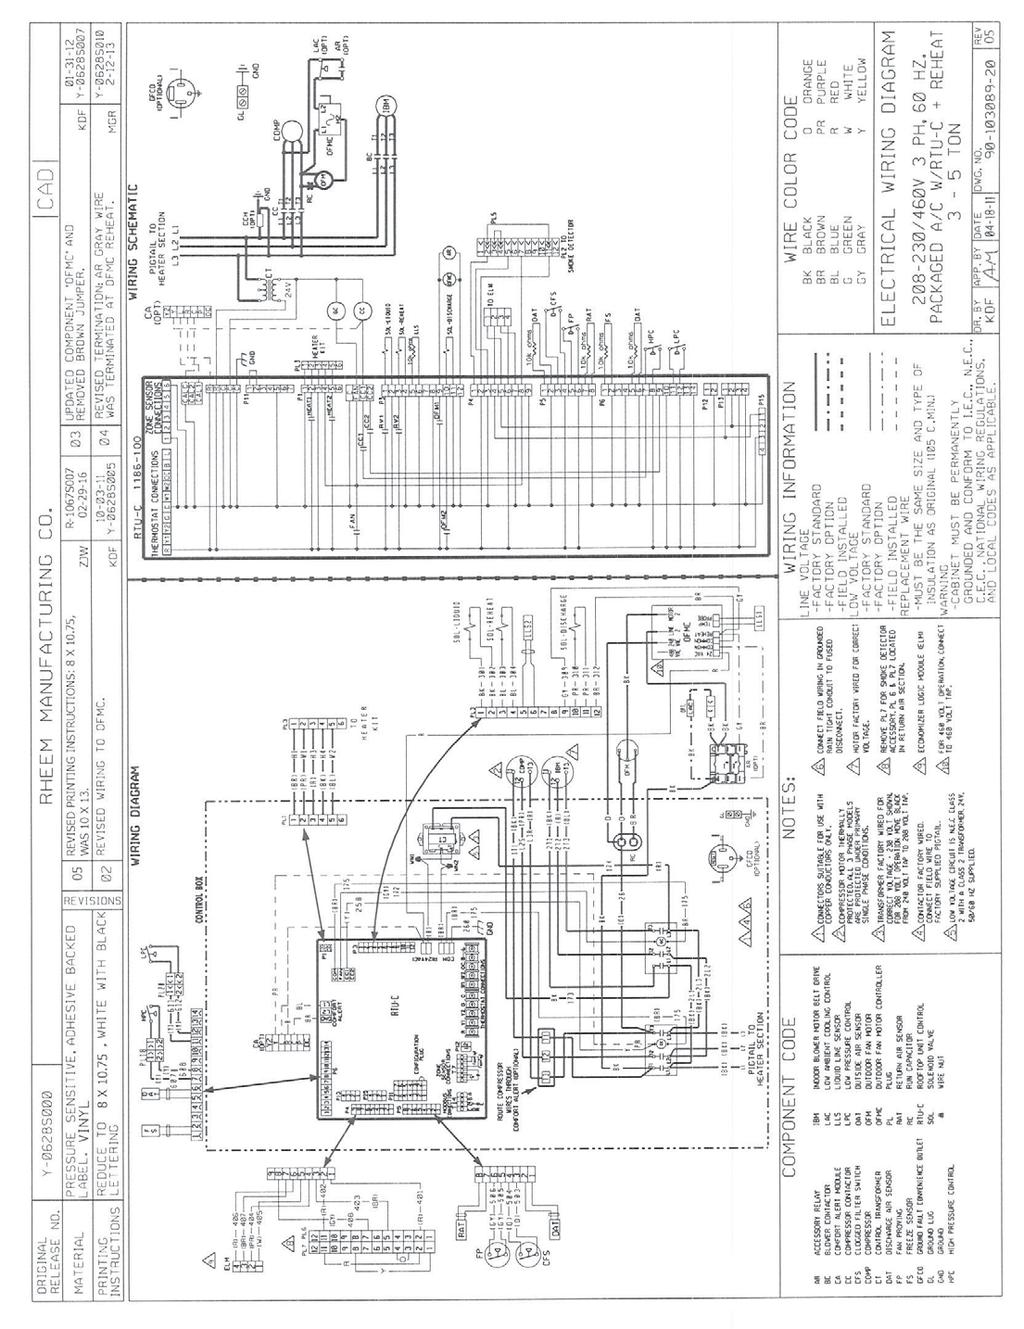 Rheem Commercial Classic Series Package Air Conditioner Pdf Aaon Rq Wiring Diagrams 62